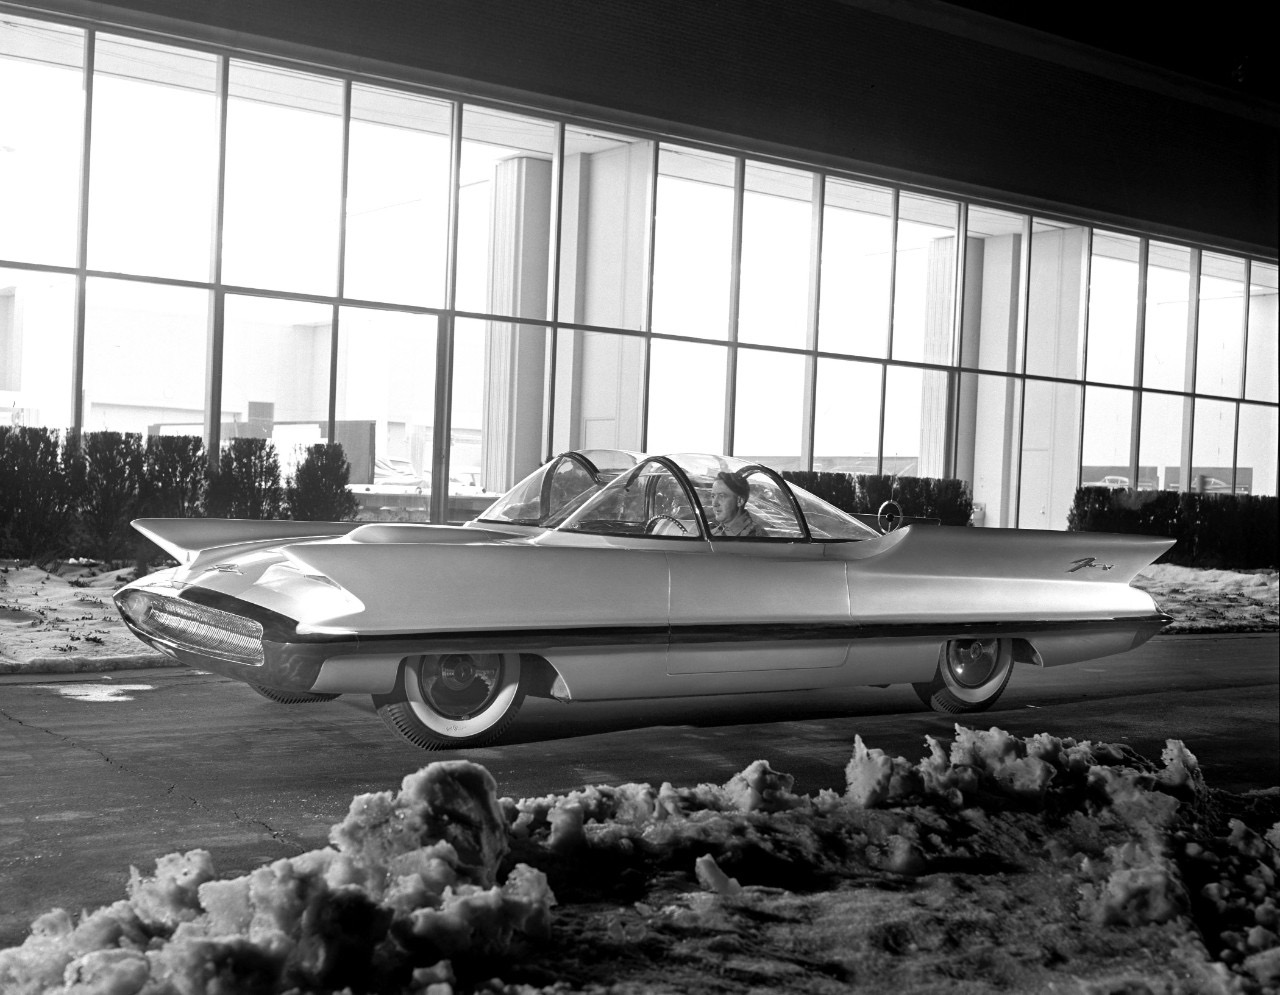 Top 10 1950s American concept cars | ClassicCars.com Journal